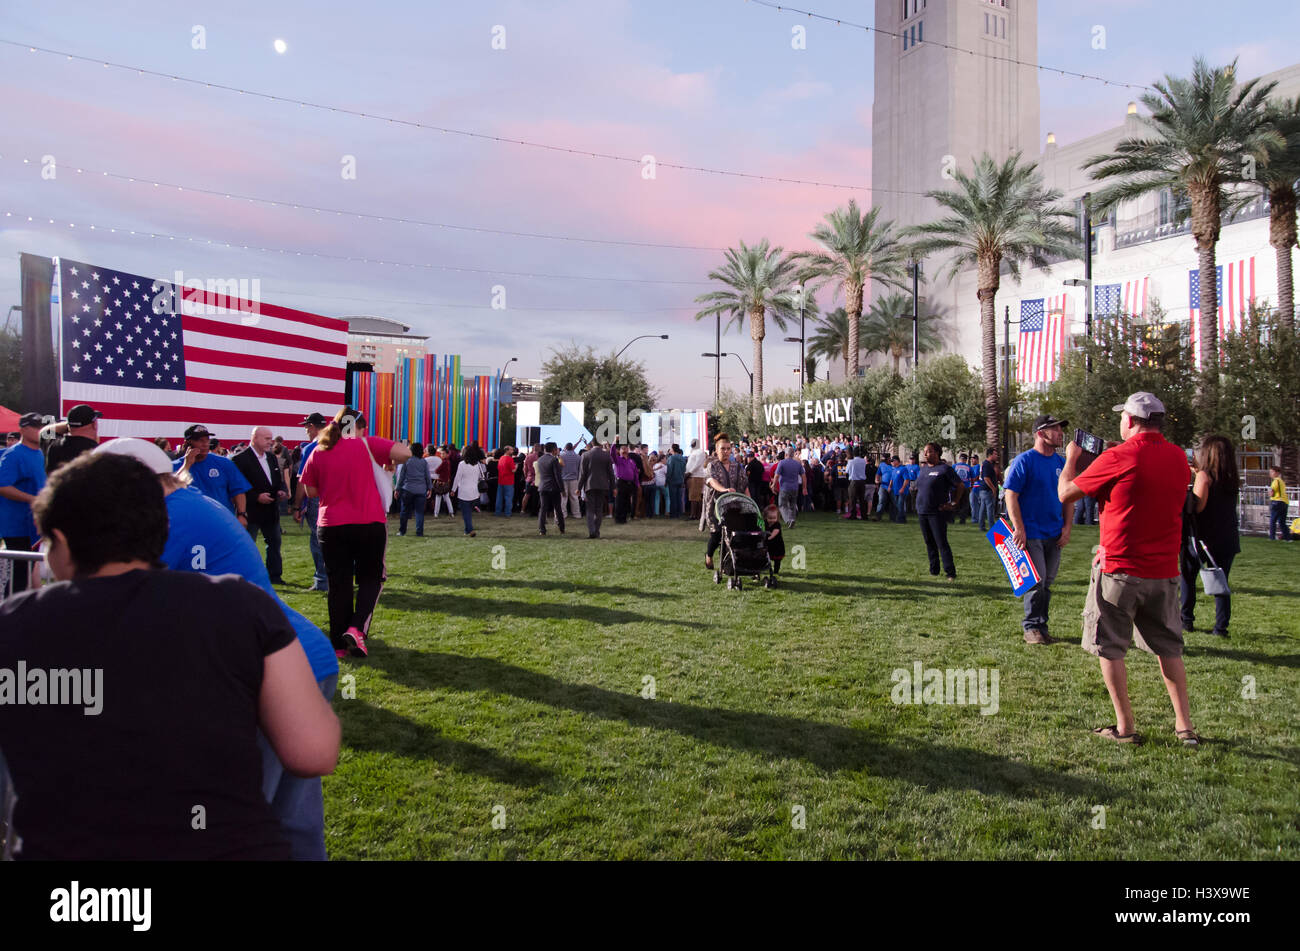 Las Vegas, Nevada, USA. 12th October, 2016. The crowd gathers for a get out the vote rally on October 16th 2016 - Stock Image